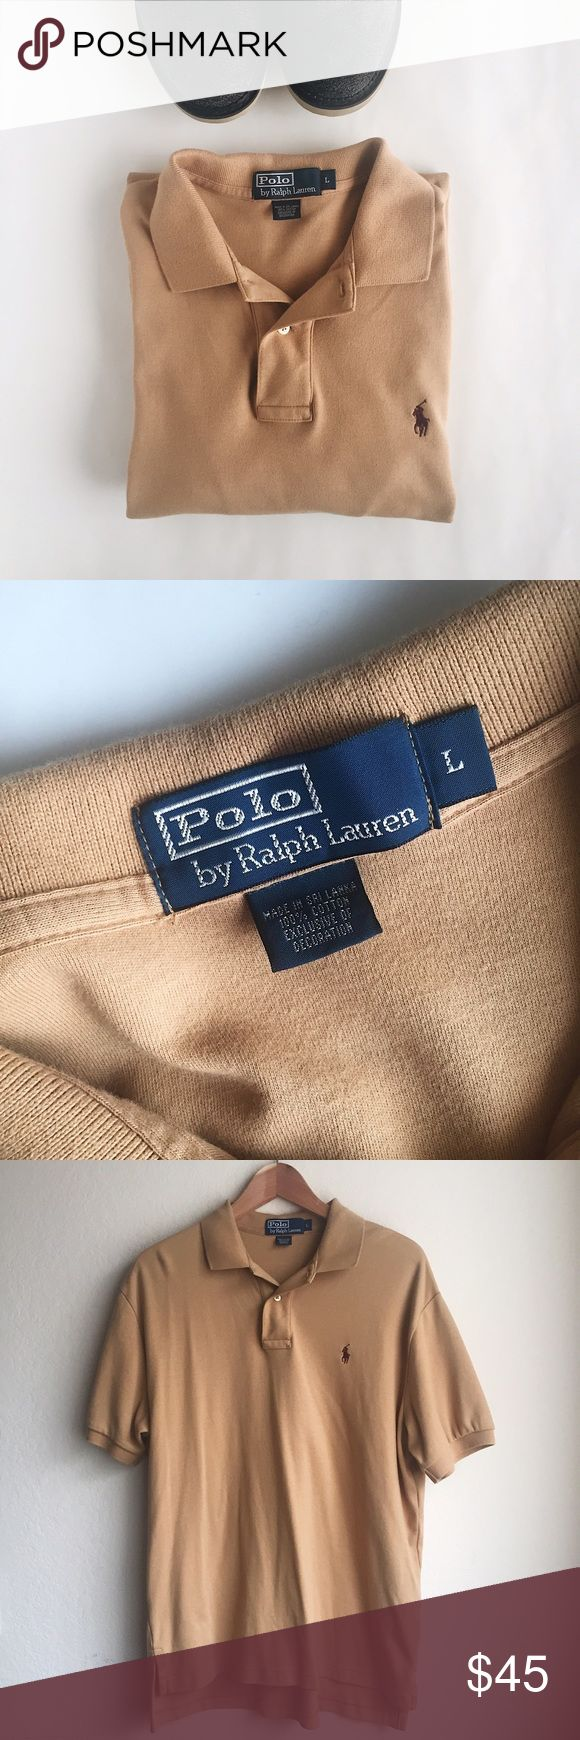 Polo Ralph Lauren cotton polo shirt Polo Ralph Lauren | Pima soft-touch short sleeve polo shirt in Tan. Relaxed fit. In very good used condition.   Size: L  - Ribbed polo collar - Short sleeves with ribbed armbands - Two-button placket - Tennis tail - 100% cotton Polo by Ralph Lauren Shirts Polos